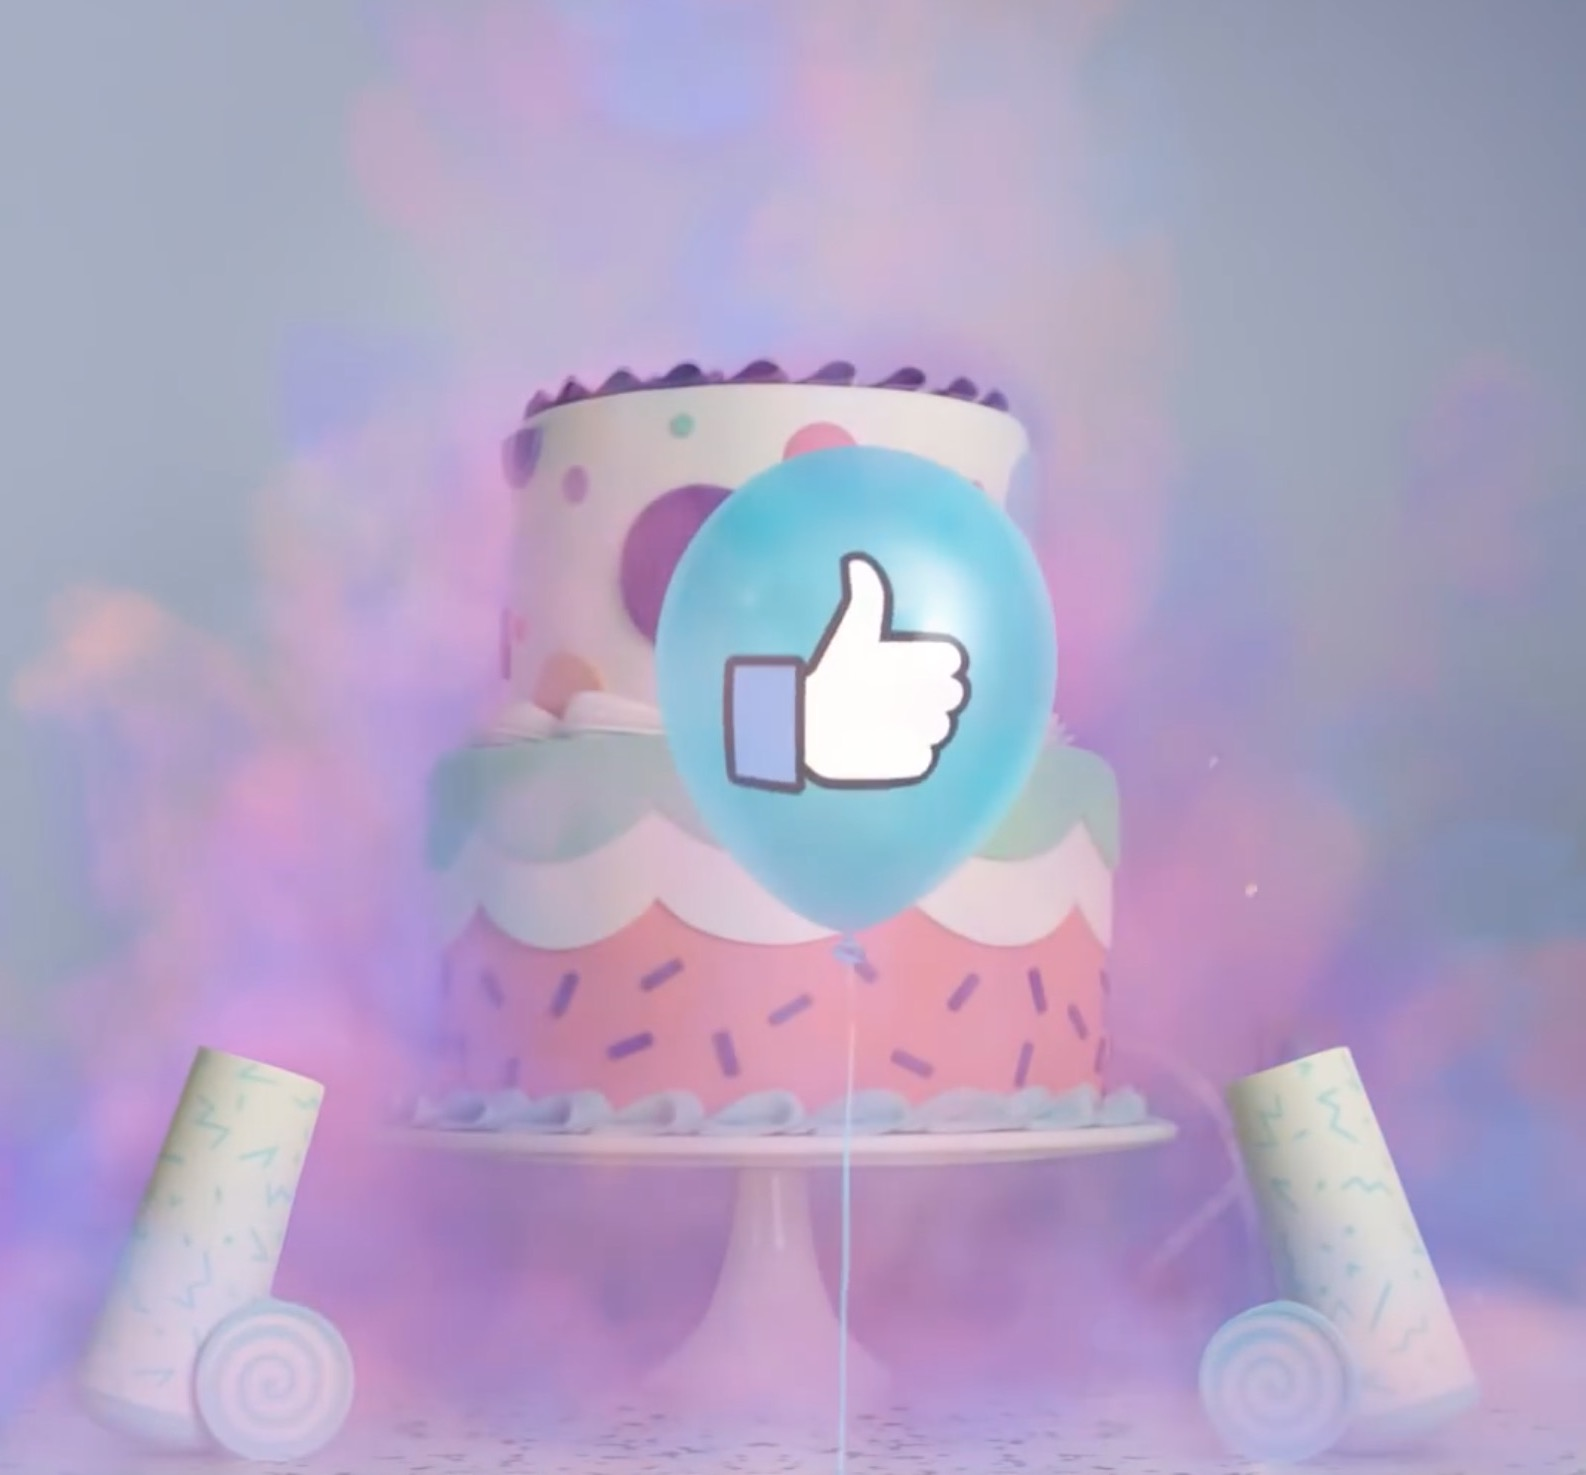 Compleanno Su Facebook Video Riepilogo Di Facebook Auguri Su